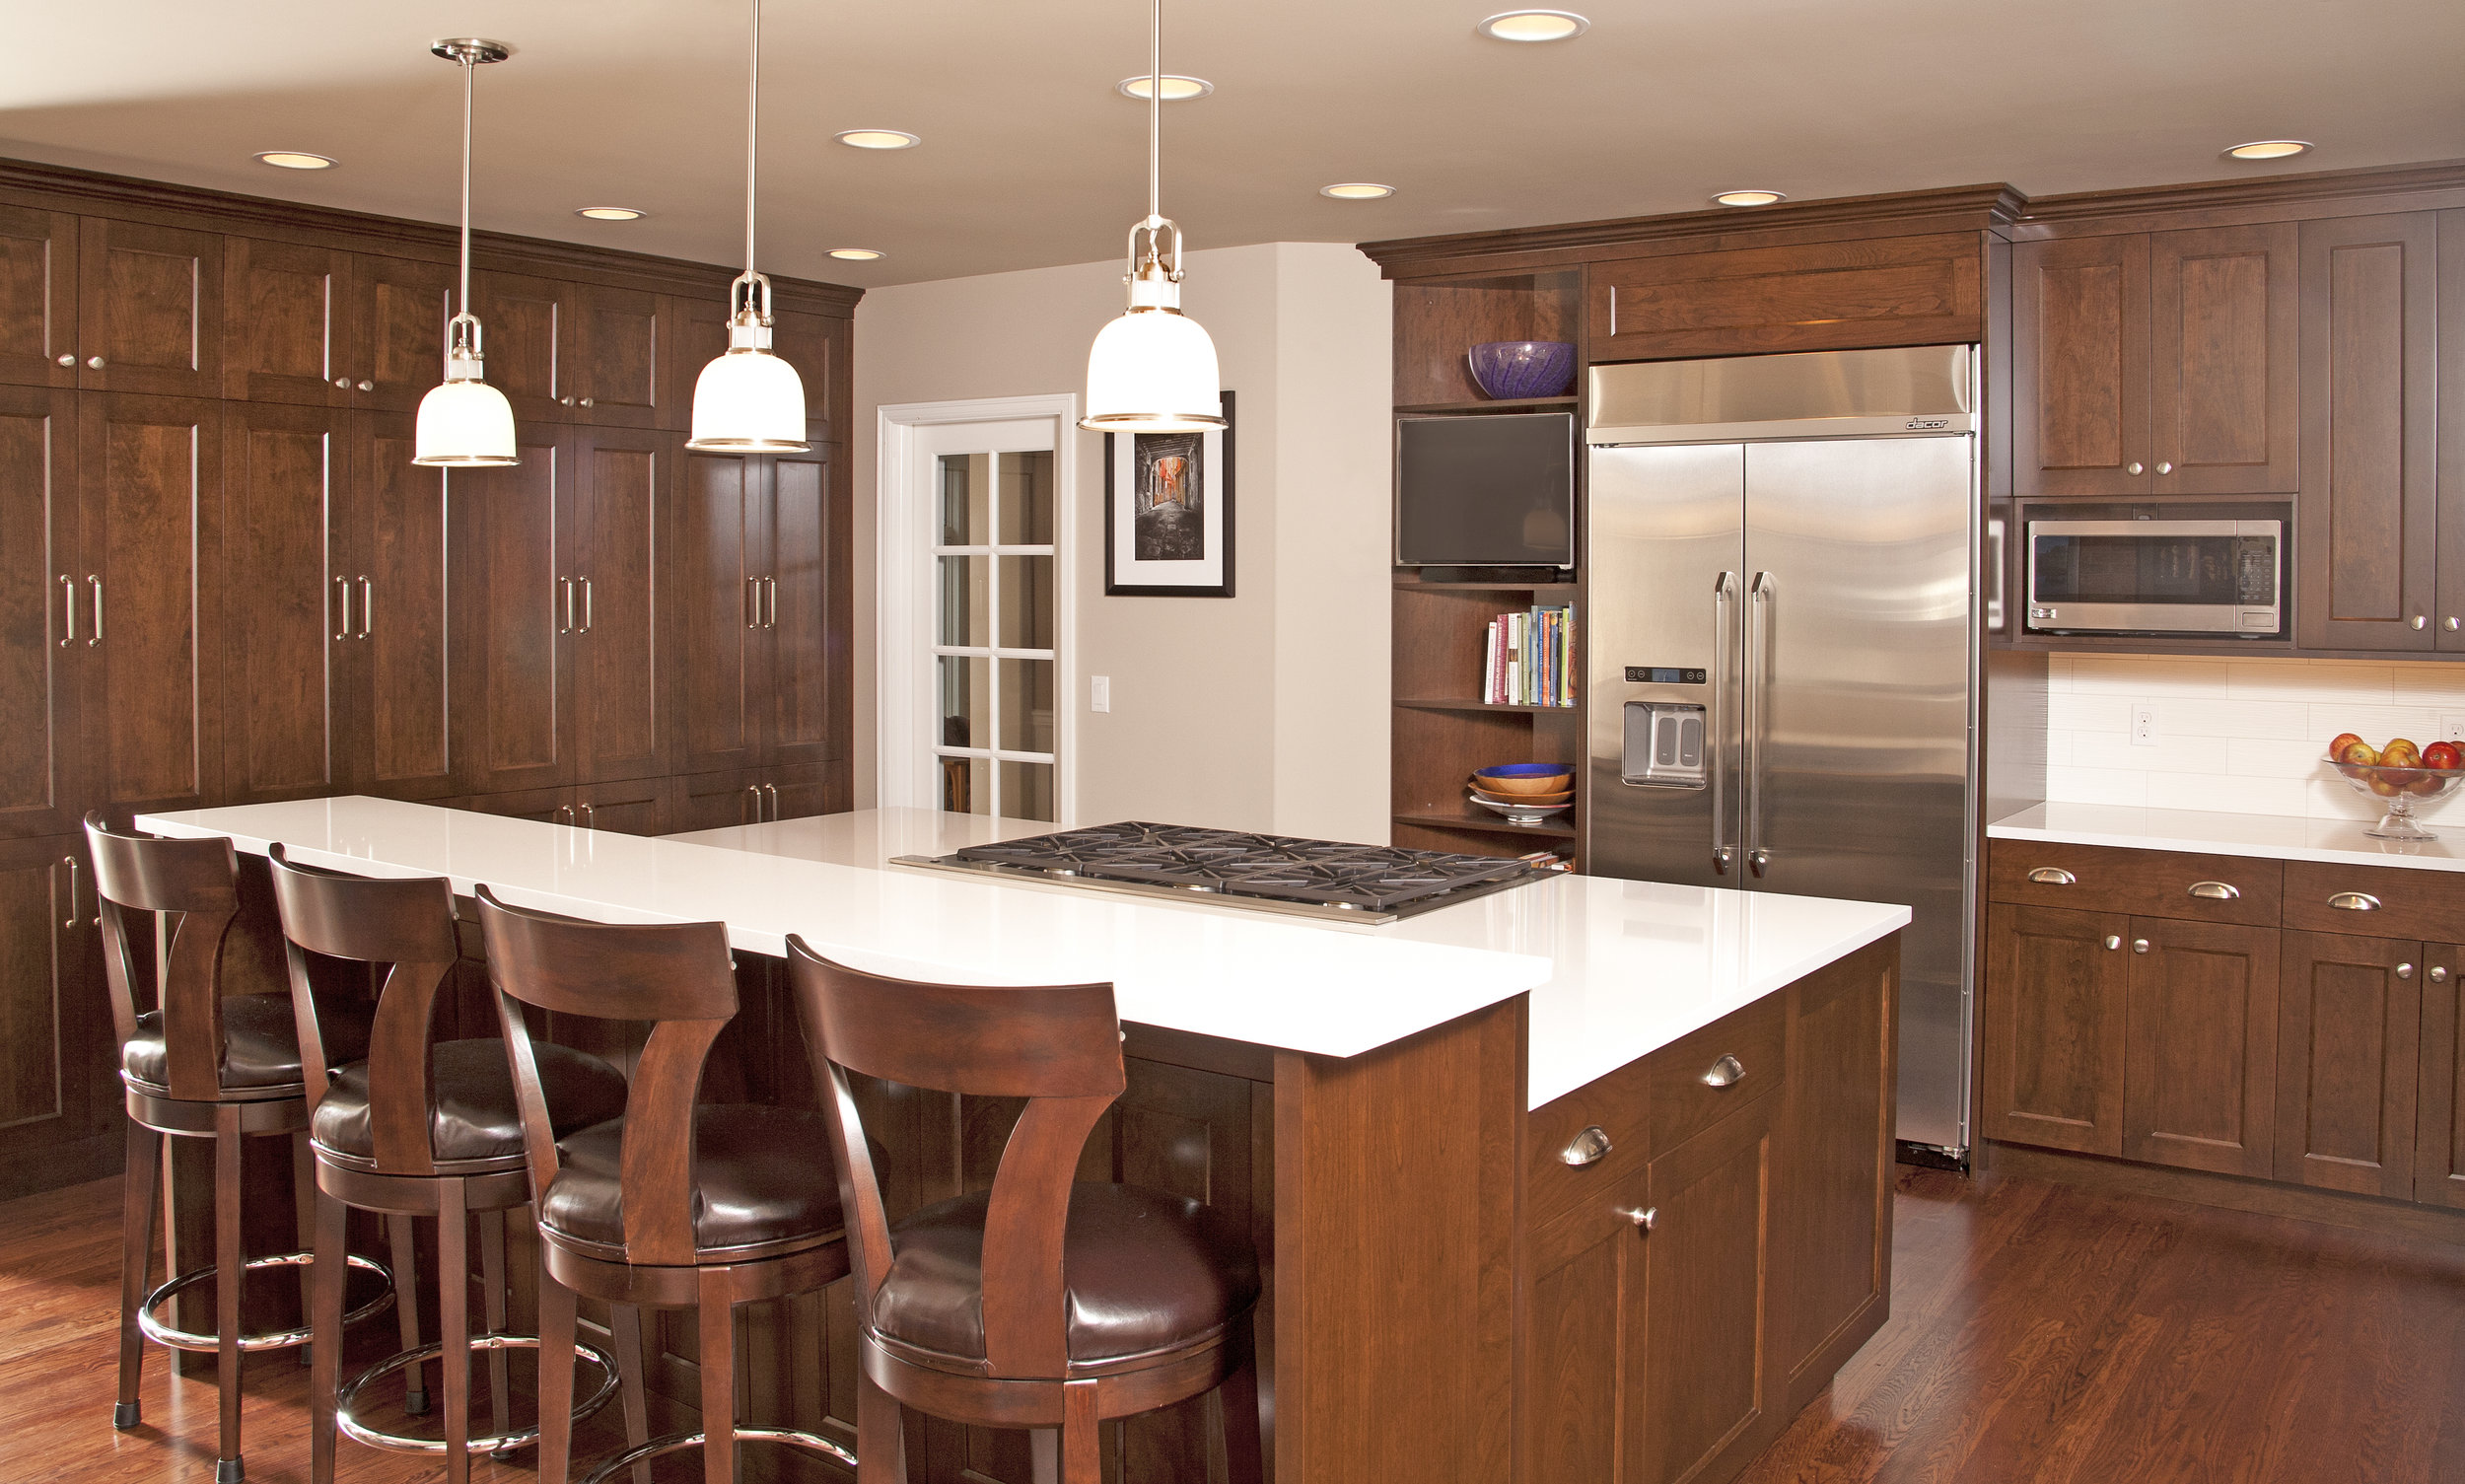 Woodinville Brookside Country Club Traditional Kitchen 3.jpg